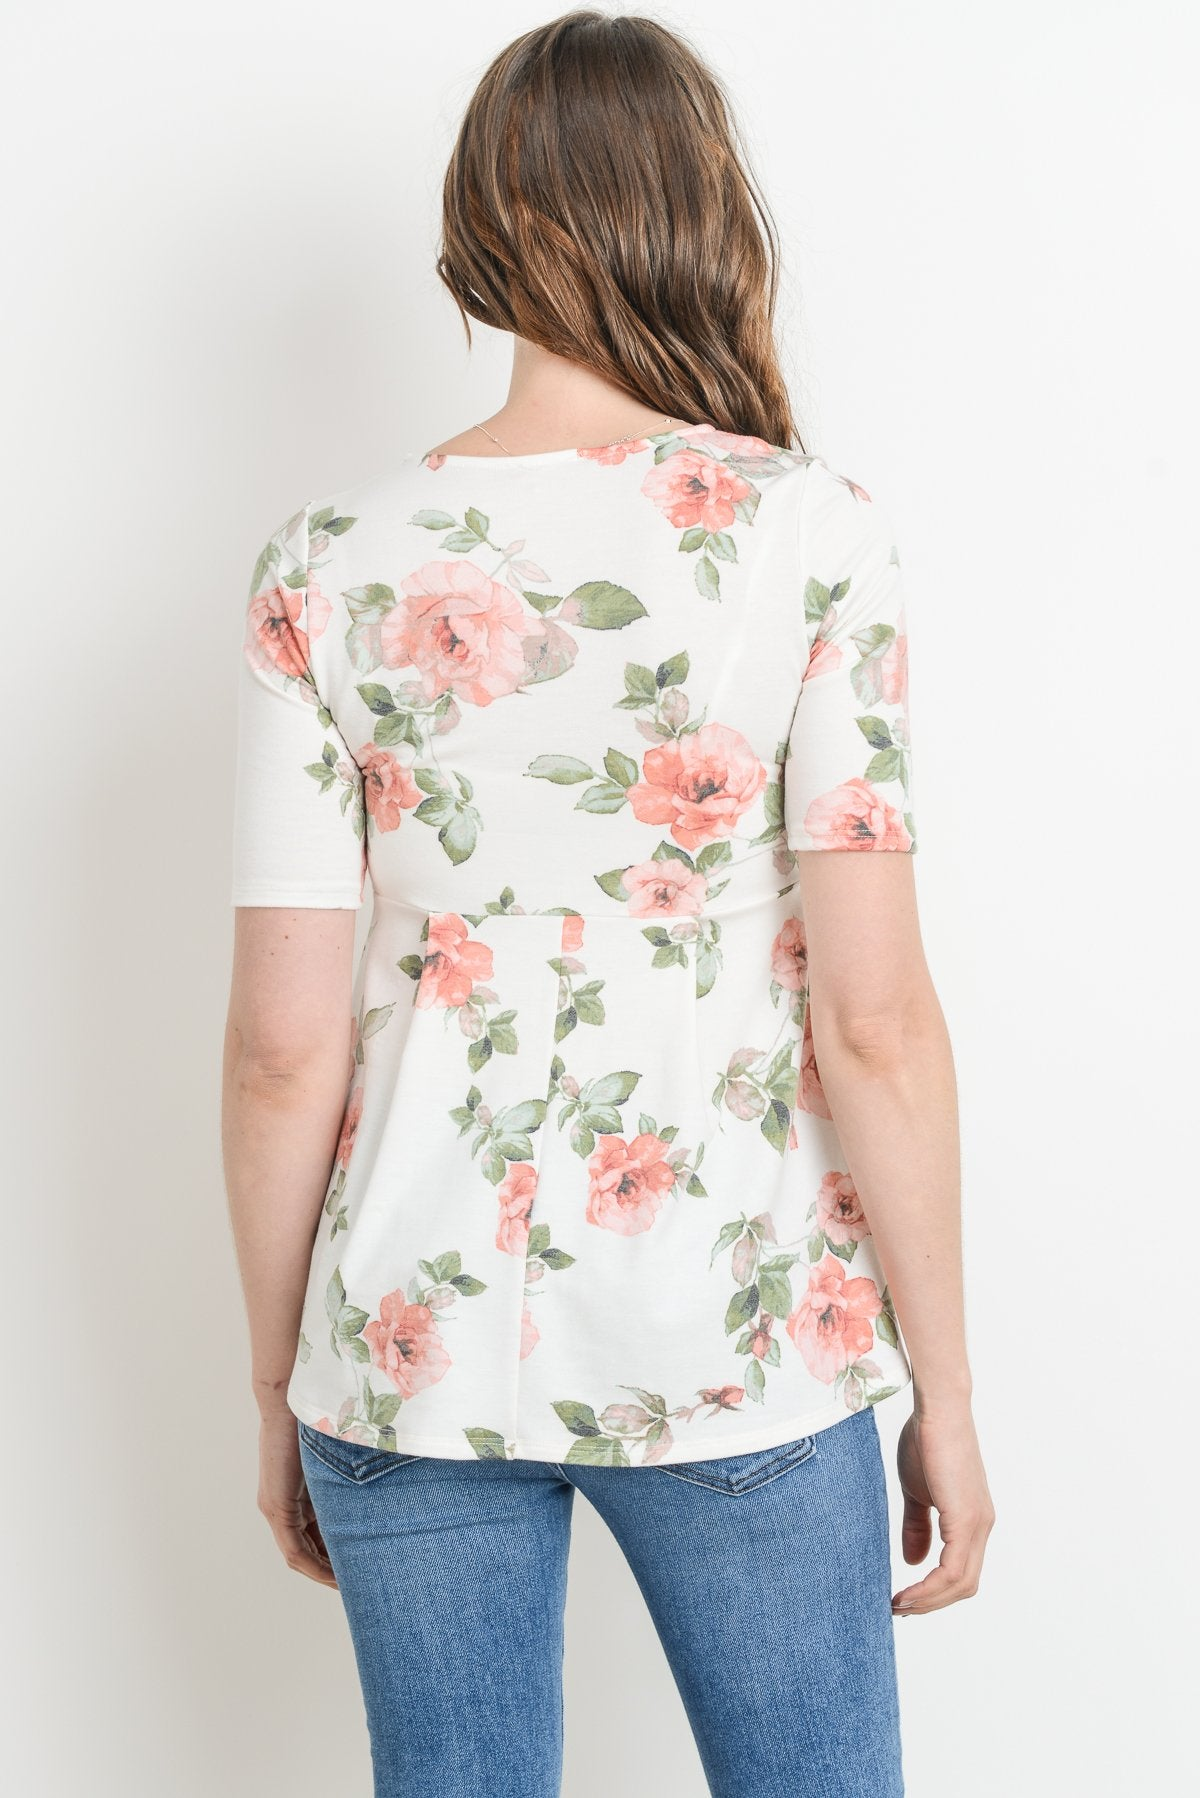 Quarter Sleeve V-Neck Floral Print Maternity Top with Front Pleats